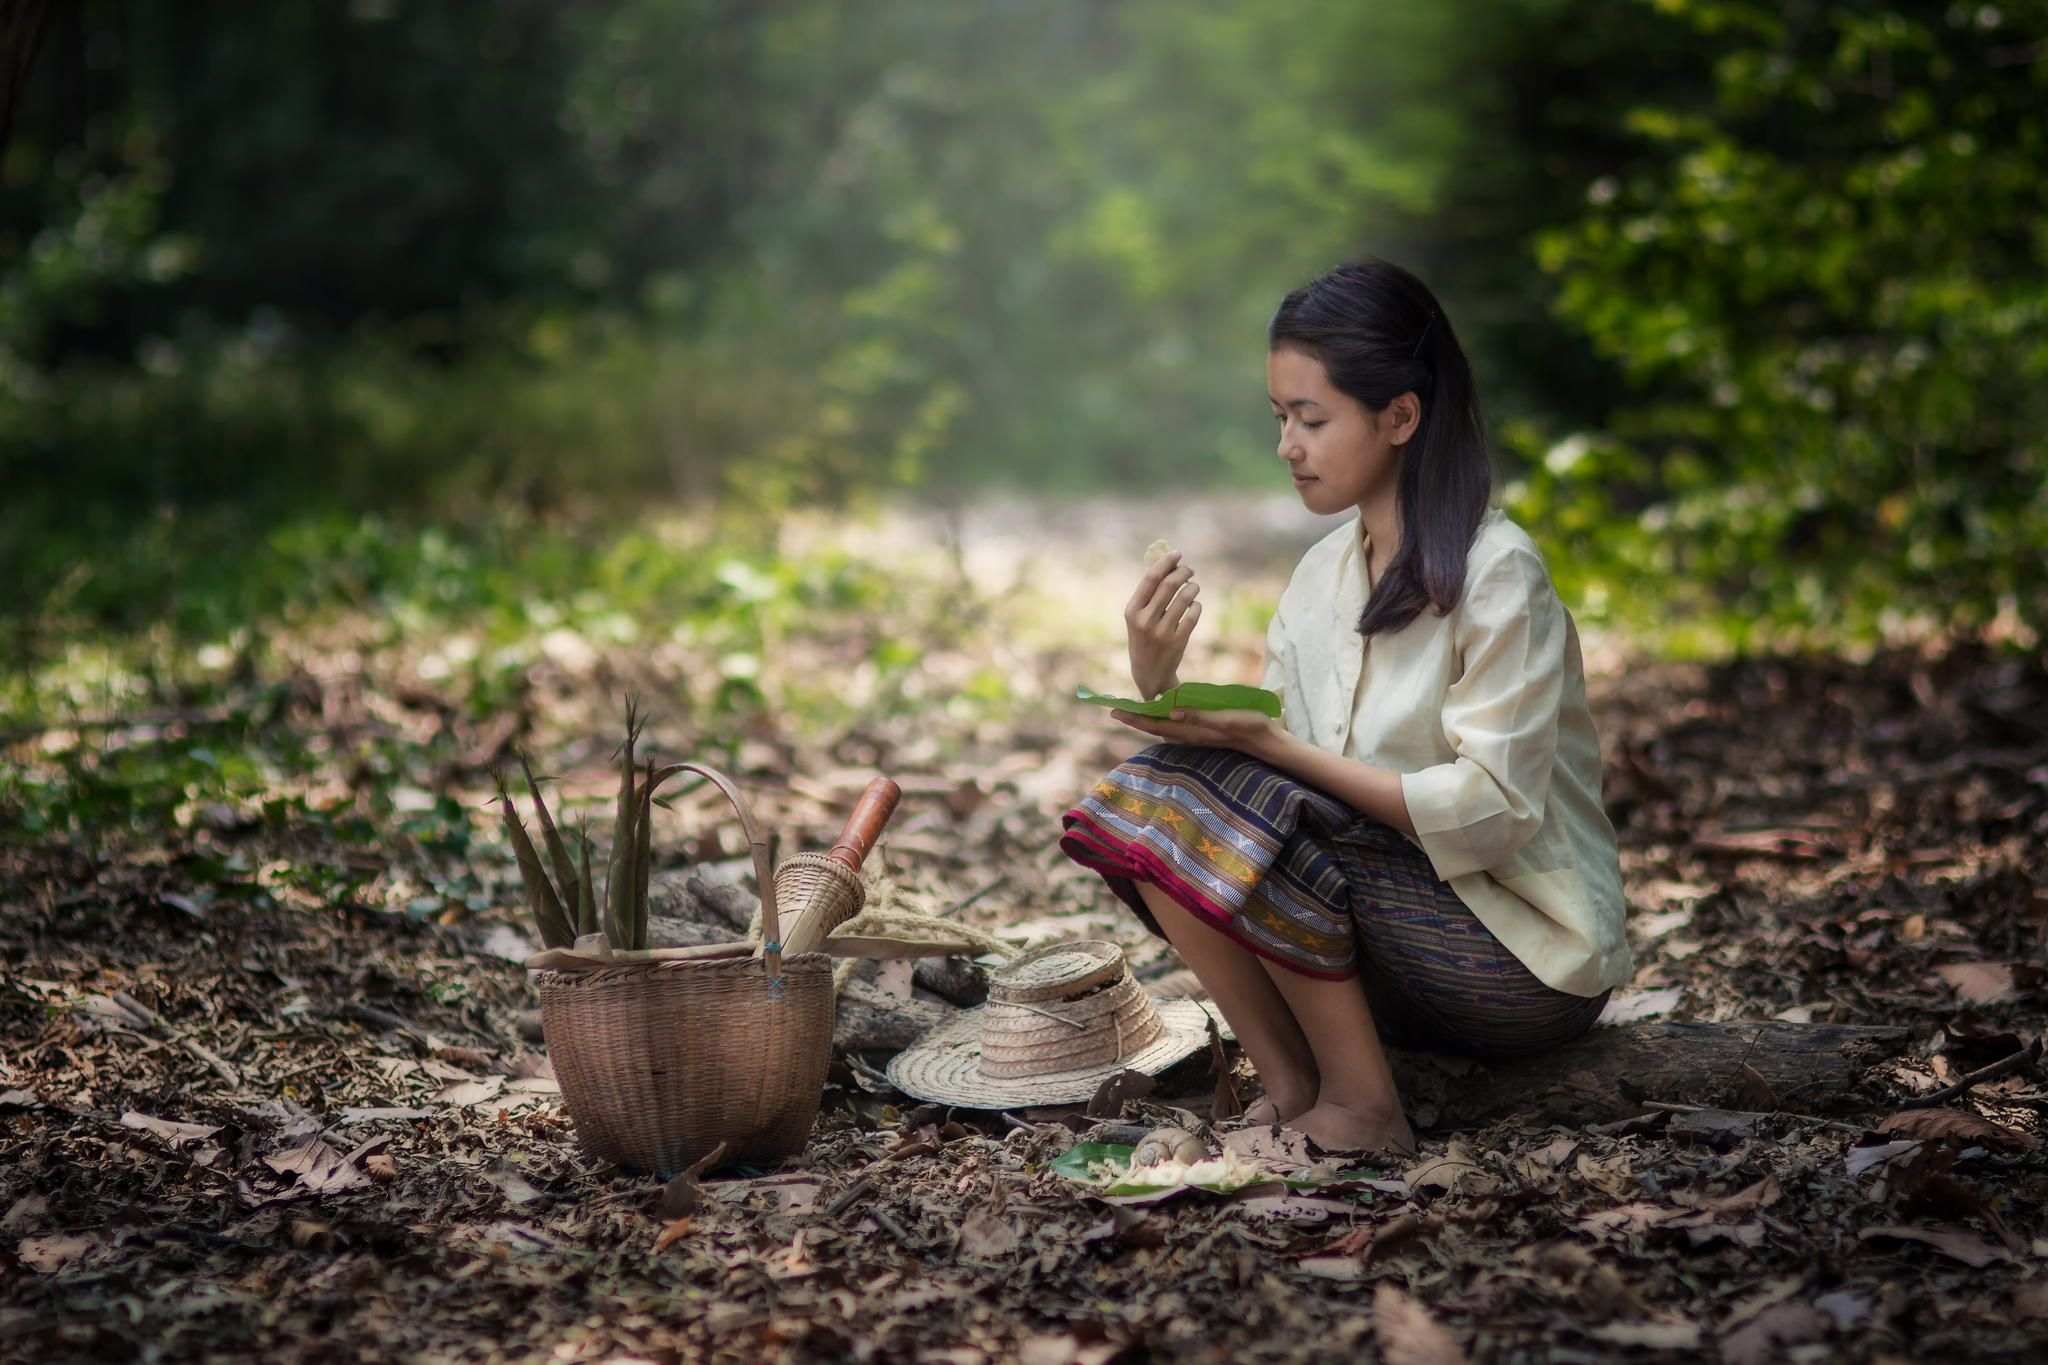 Photograph Thai girl find mashroom by Wichan Sumalee on